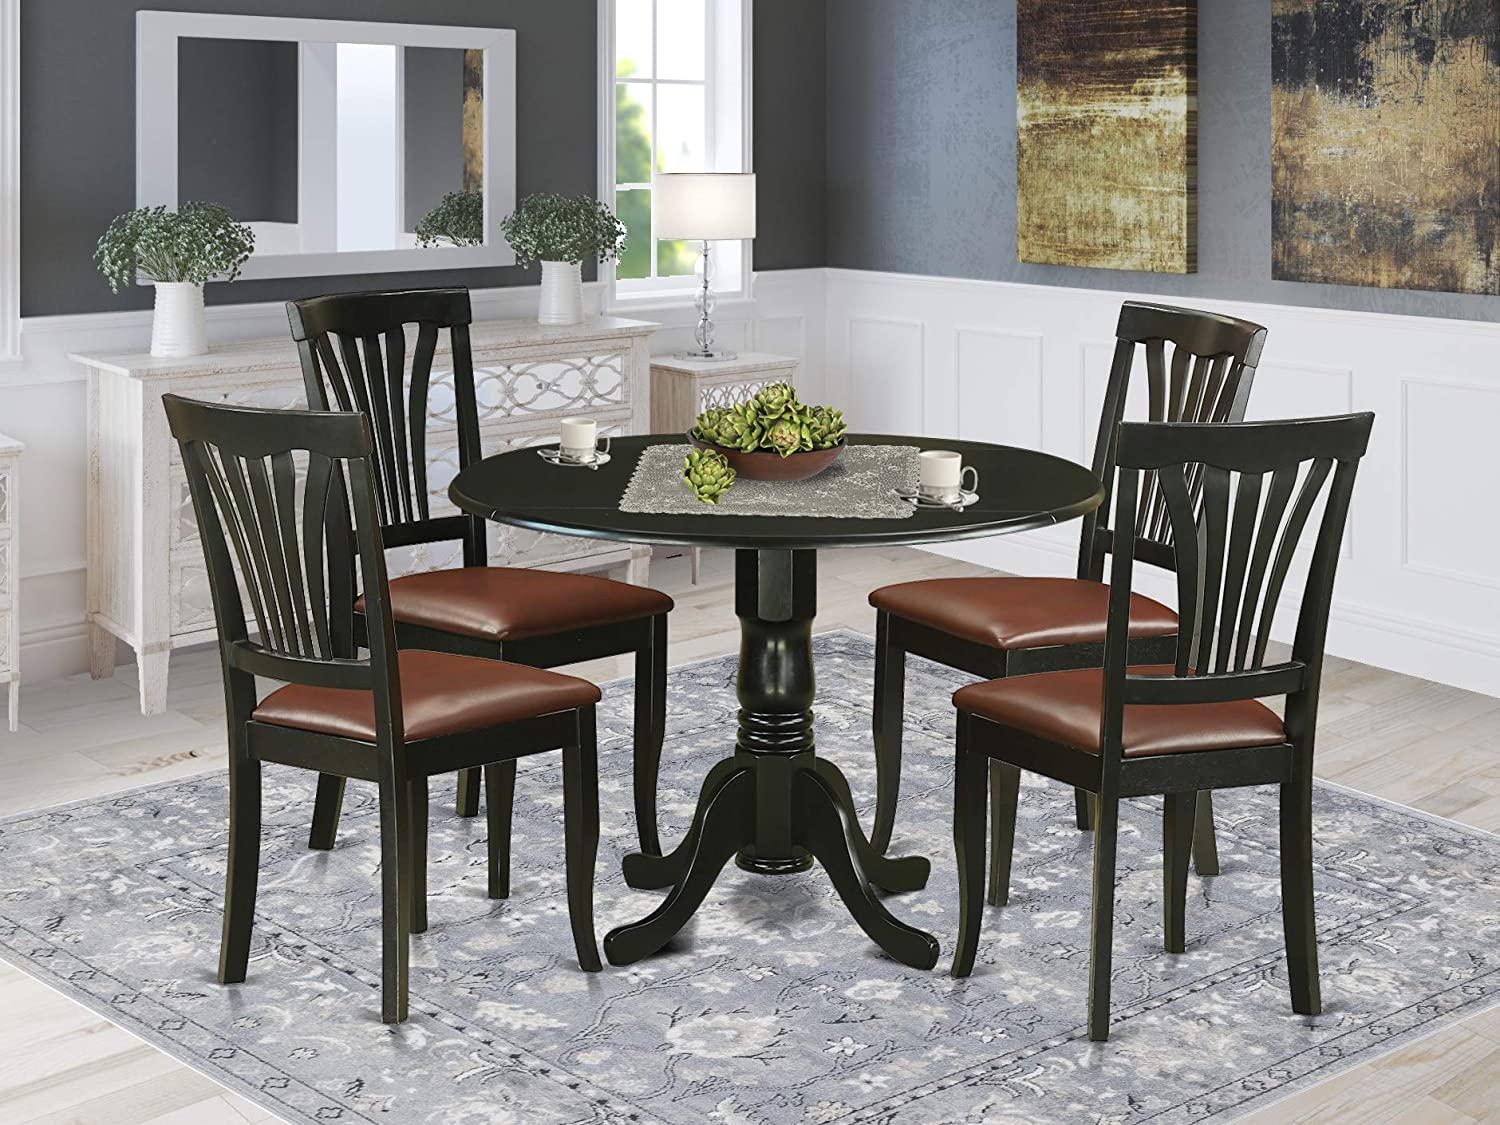 5 Pc Table set - Dinette Table and 4 dinette Chairs